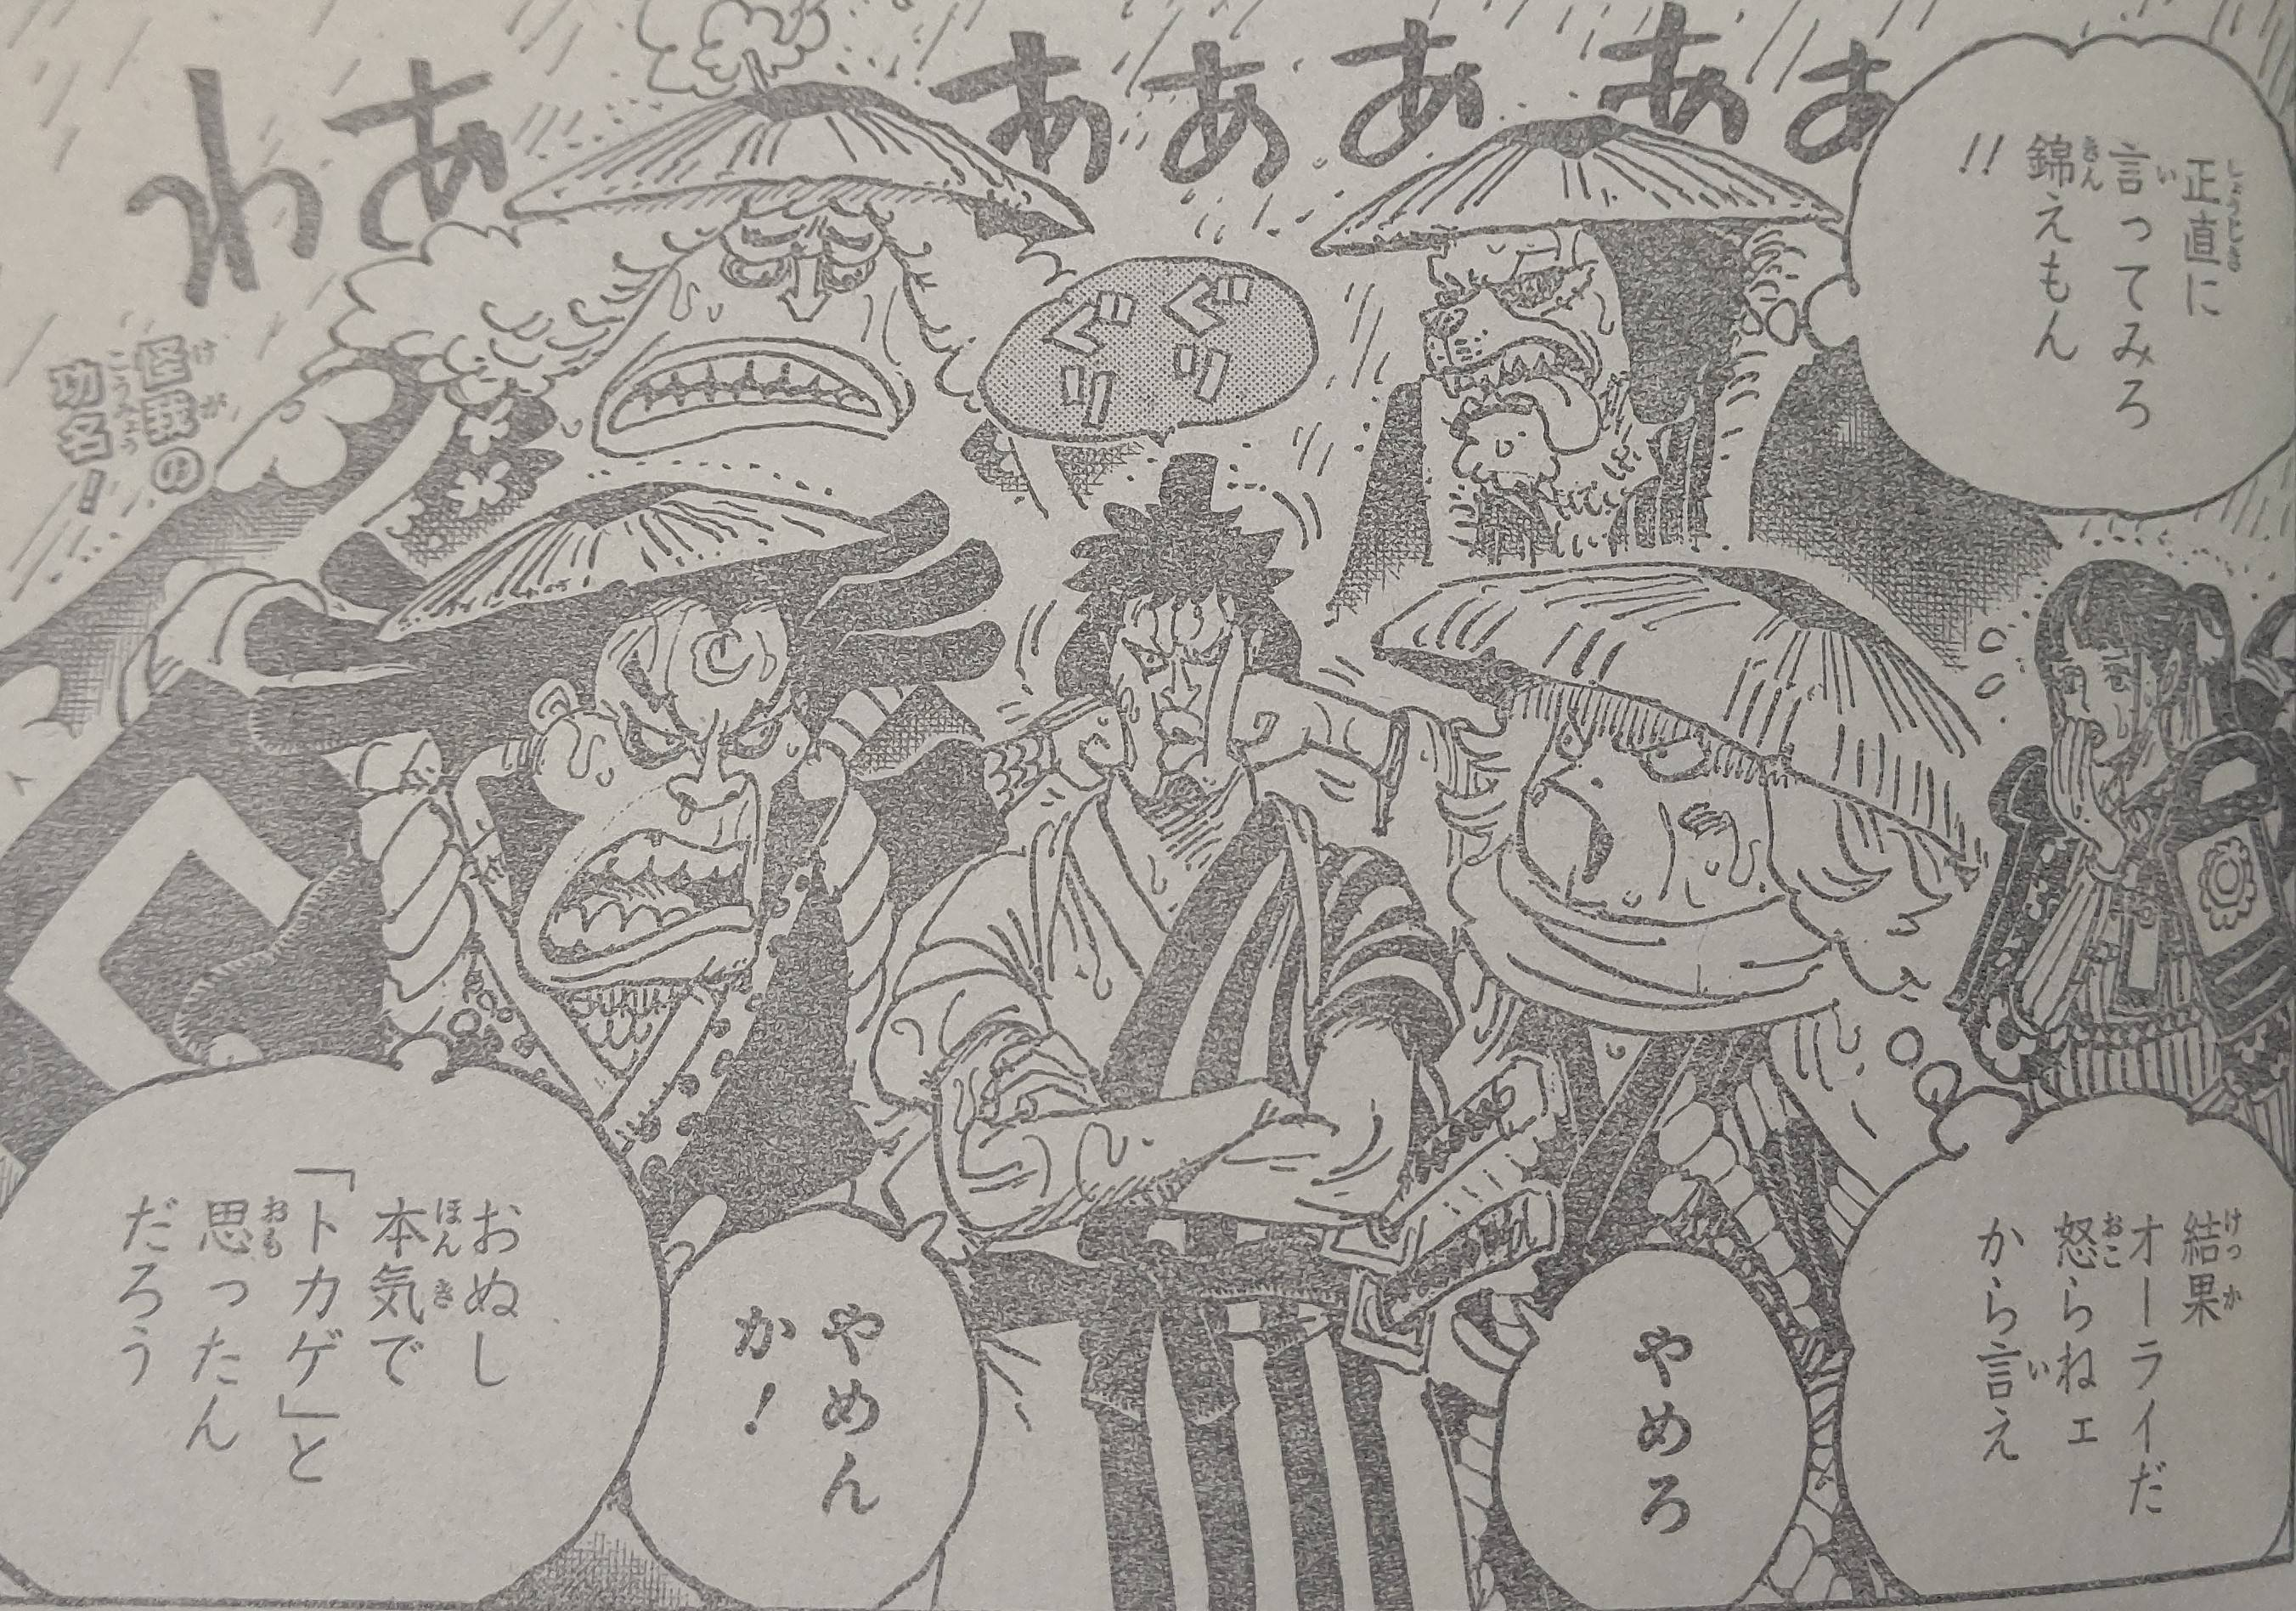 One Piece Spoilers 976 05